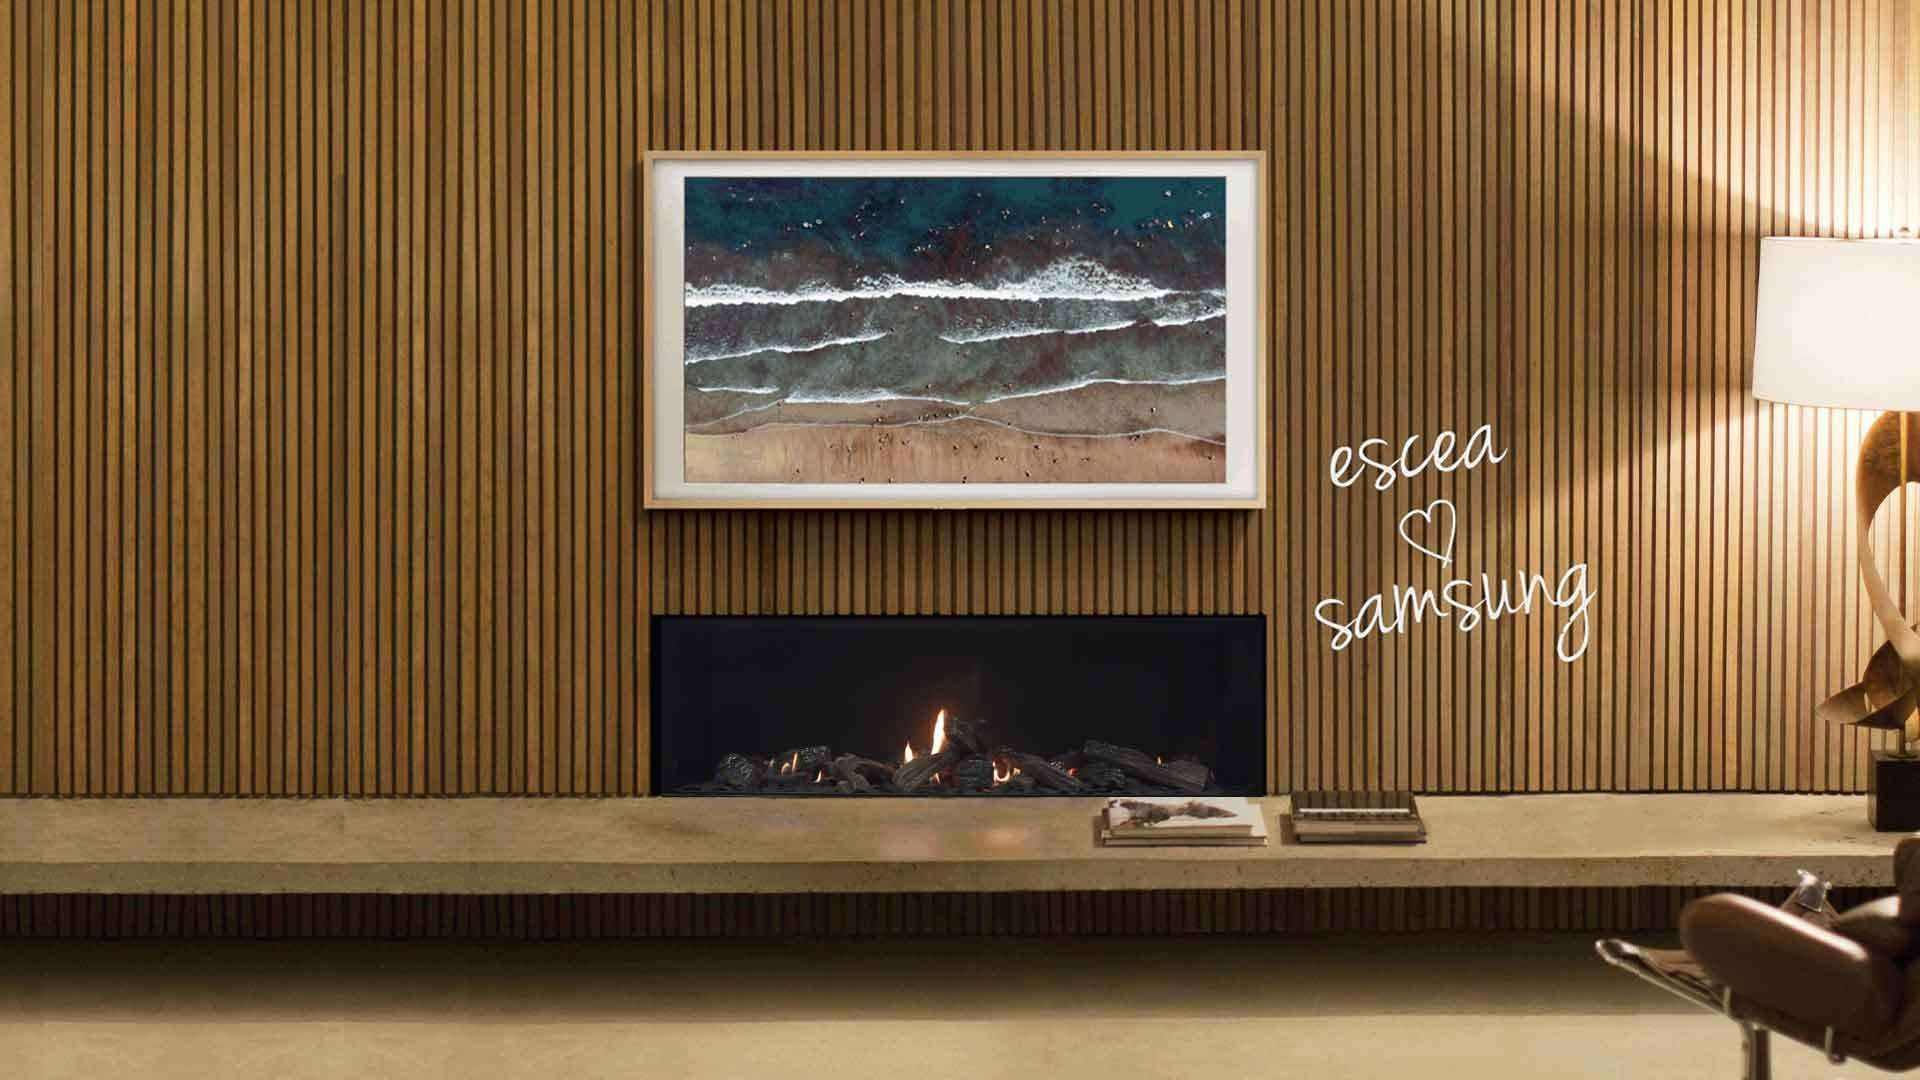 Escea DS indoor gas fireplace with a Samsung frame TV above